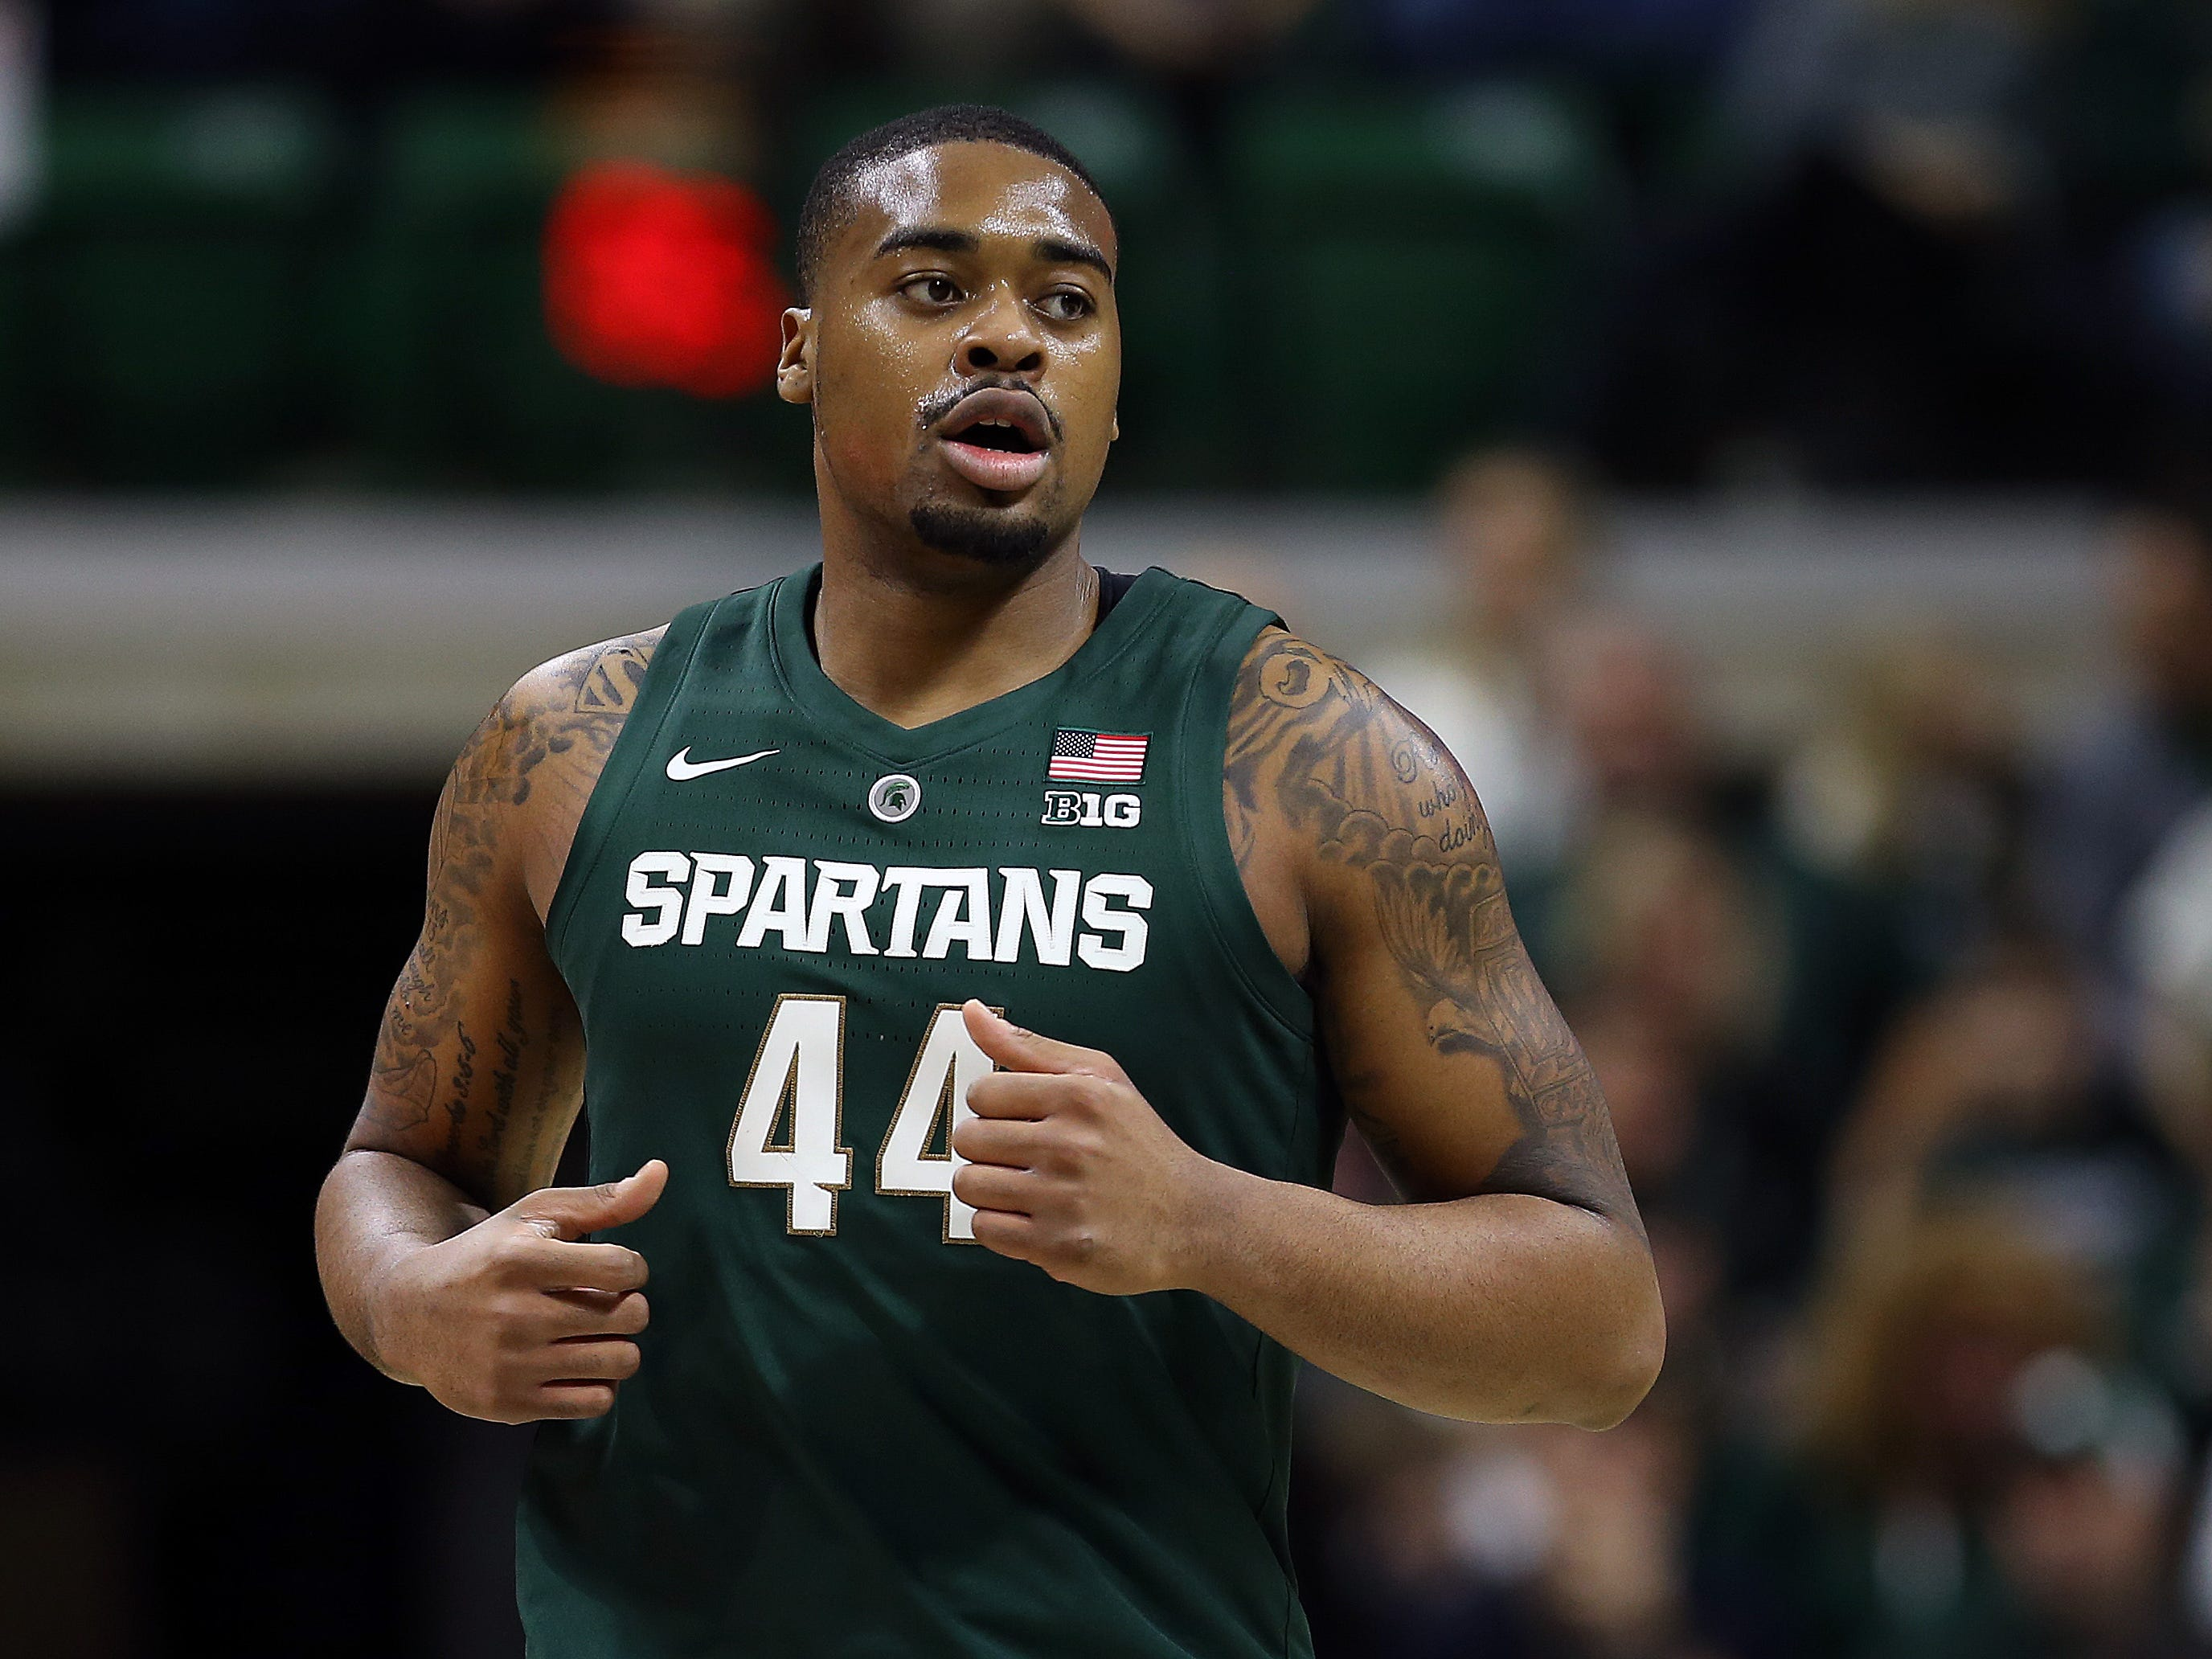 Michigan State Spartans forward Nick Ward (44) runs on the court during the first half of a game against the Michigan State Spartans at the Breslin Center.